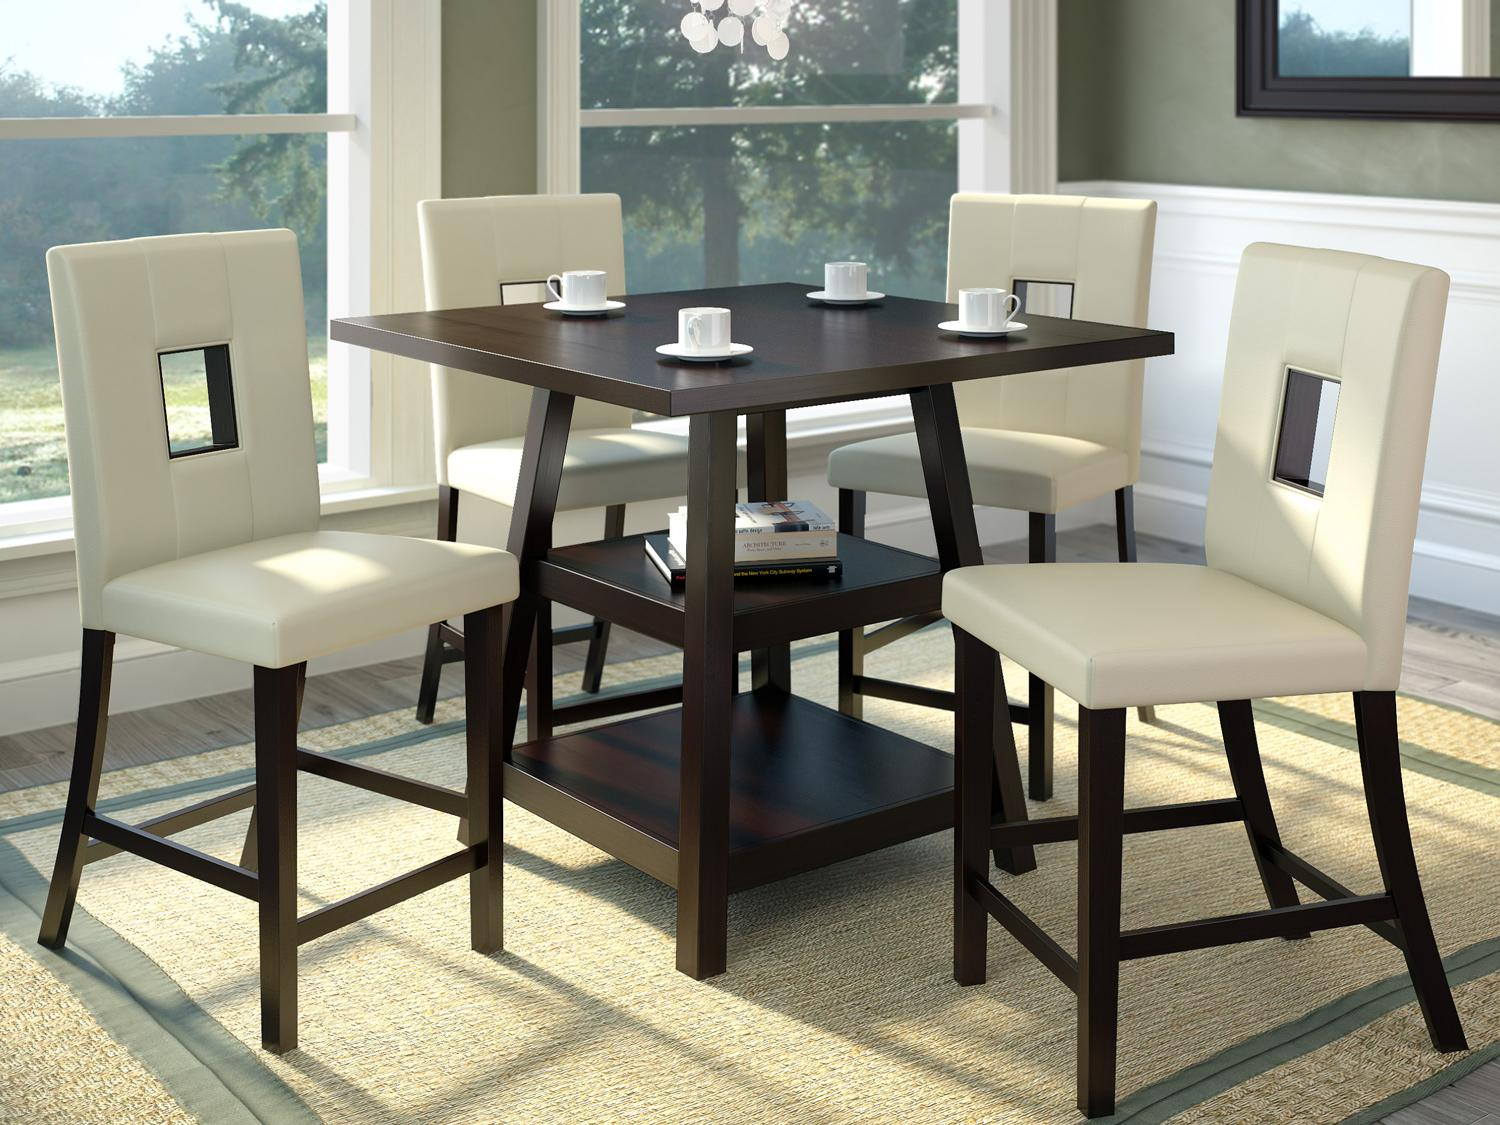 Kitchen and Dining Room Tables full size of dinning room:kitchen and dining room tables kitchen dining room OCXUMNF